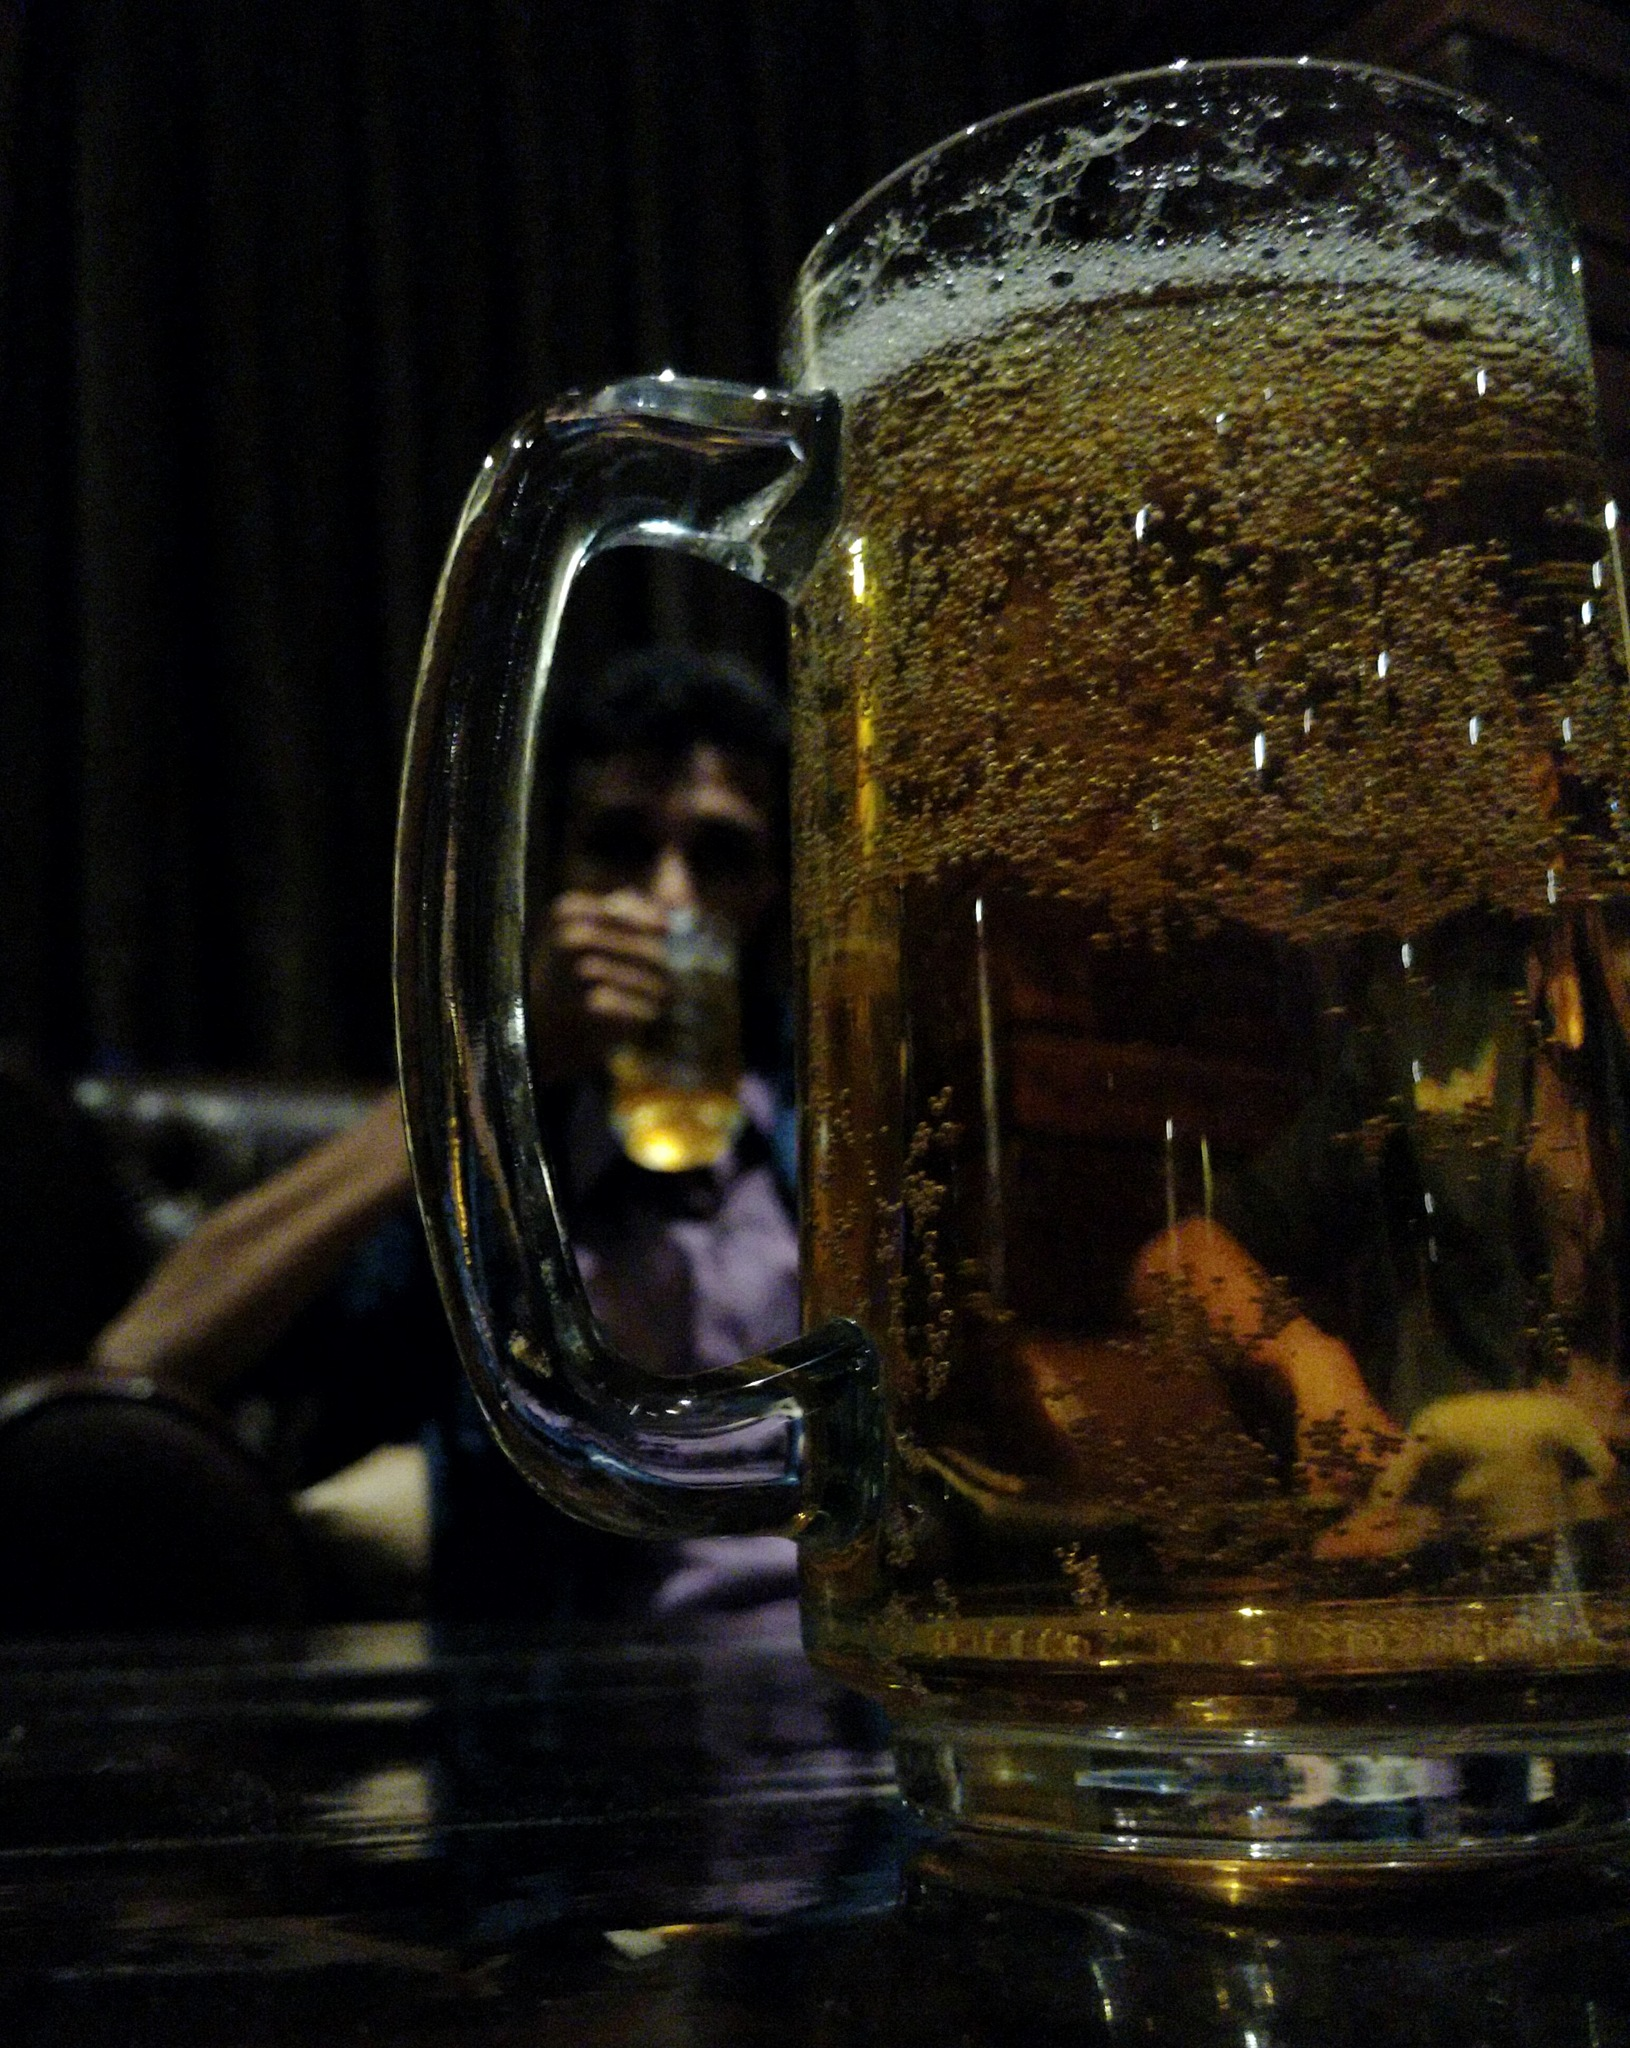 through the beer by Rahul Lohar